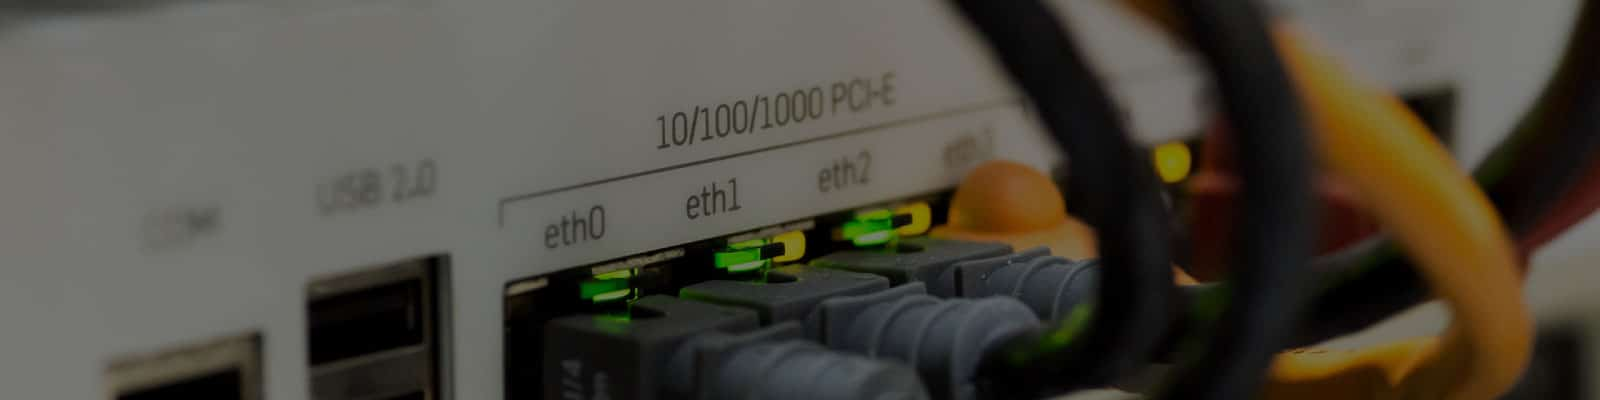 managed routers showing ethernet cables plugged in